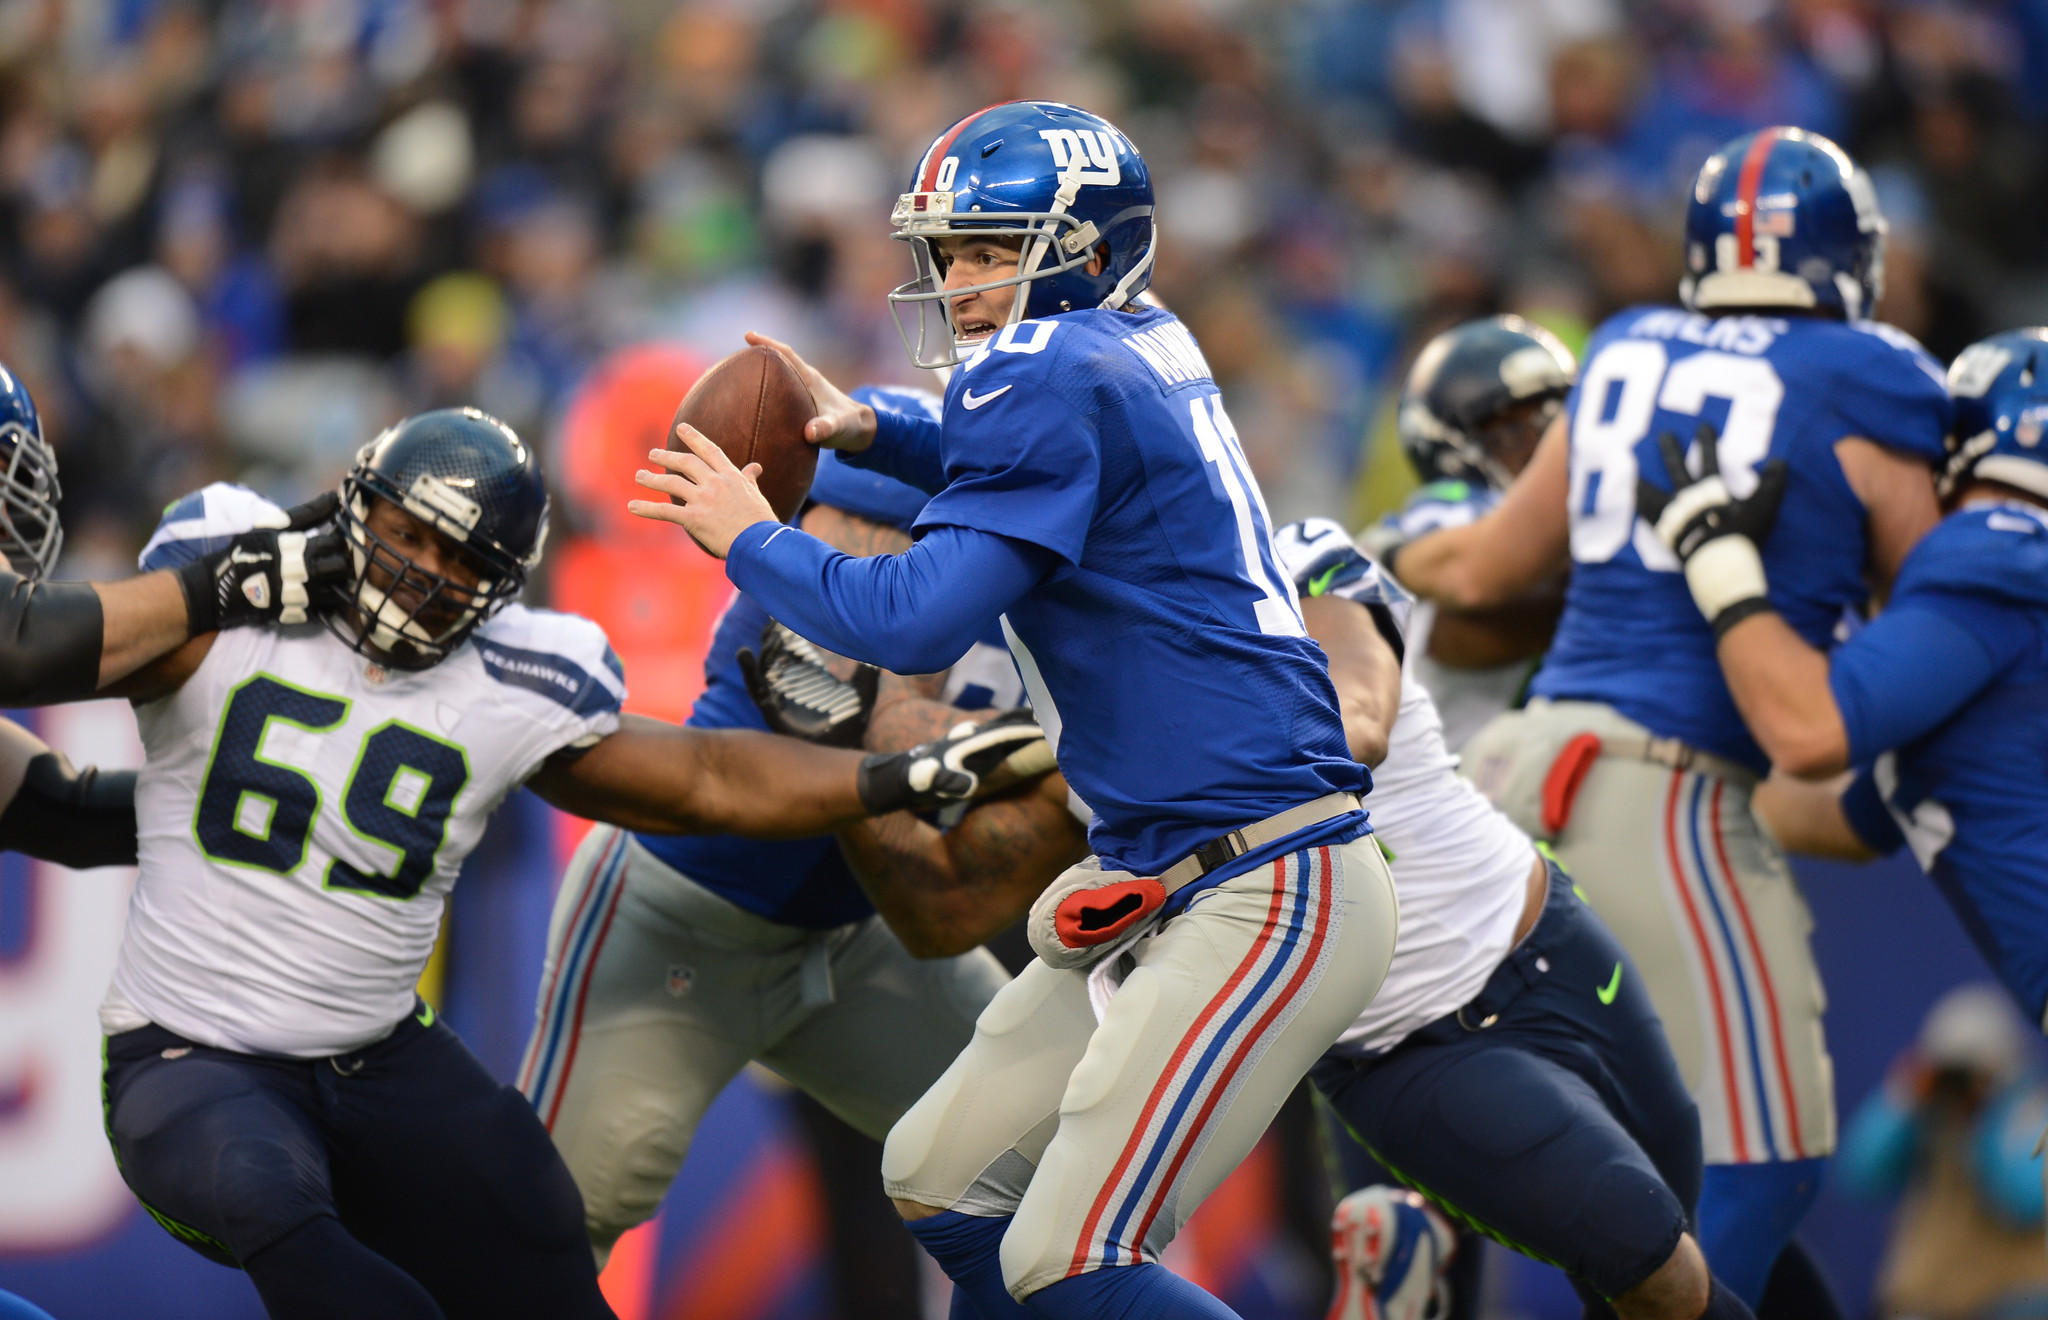 Quarterback Eli Manning of the New York Giants under pressure as he throws during the 2nd half of the Seattle Seahawks 23-0 win over the New York Giants at MetLife Stadium on Dec. 15.